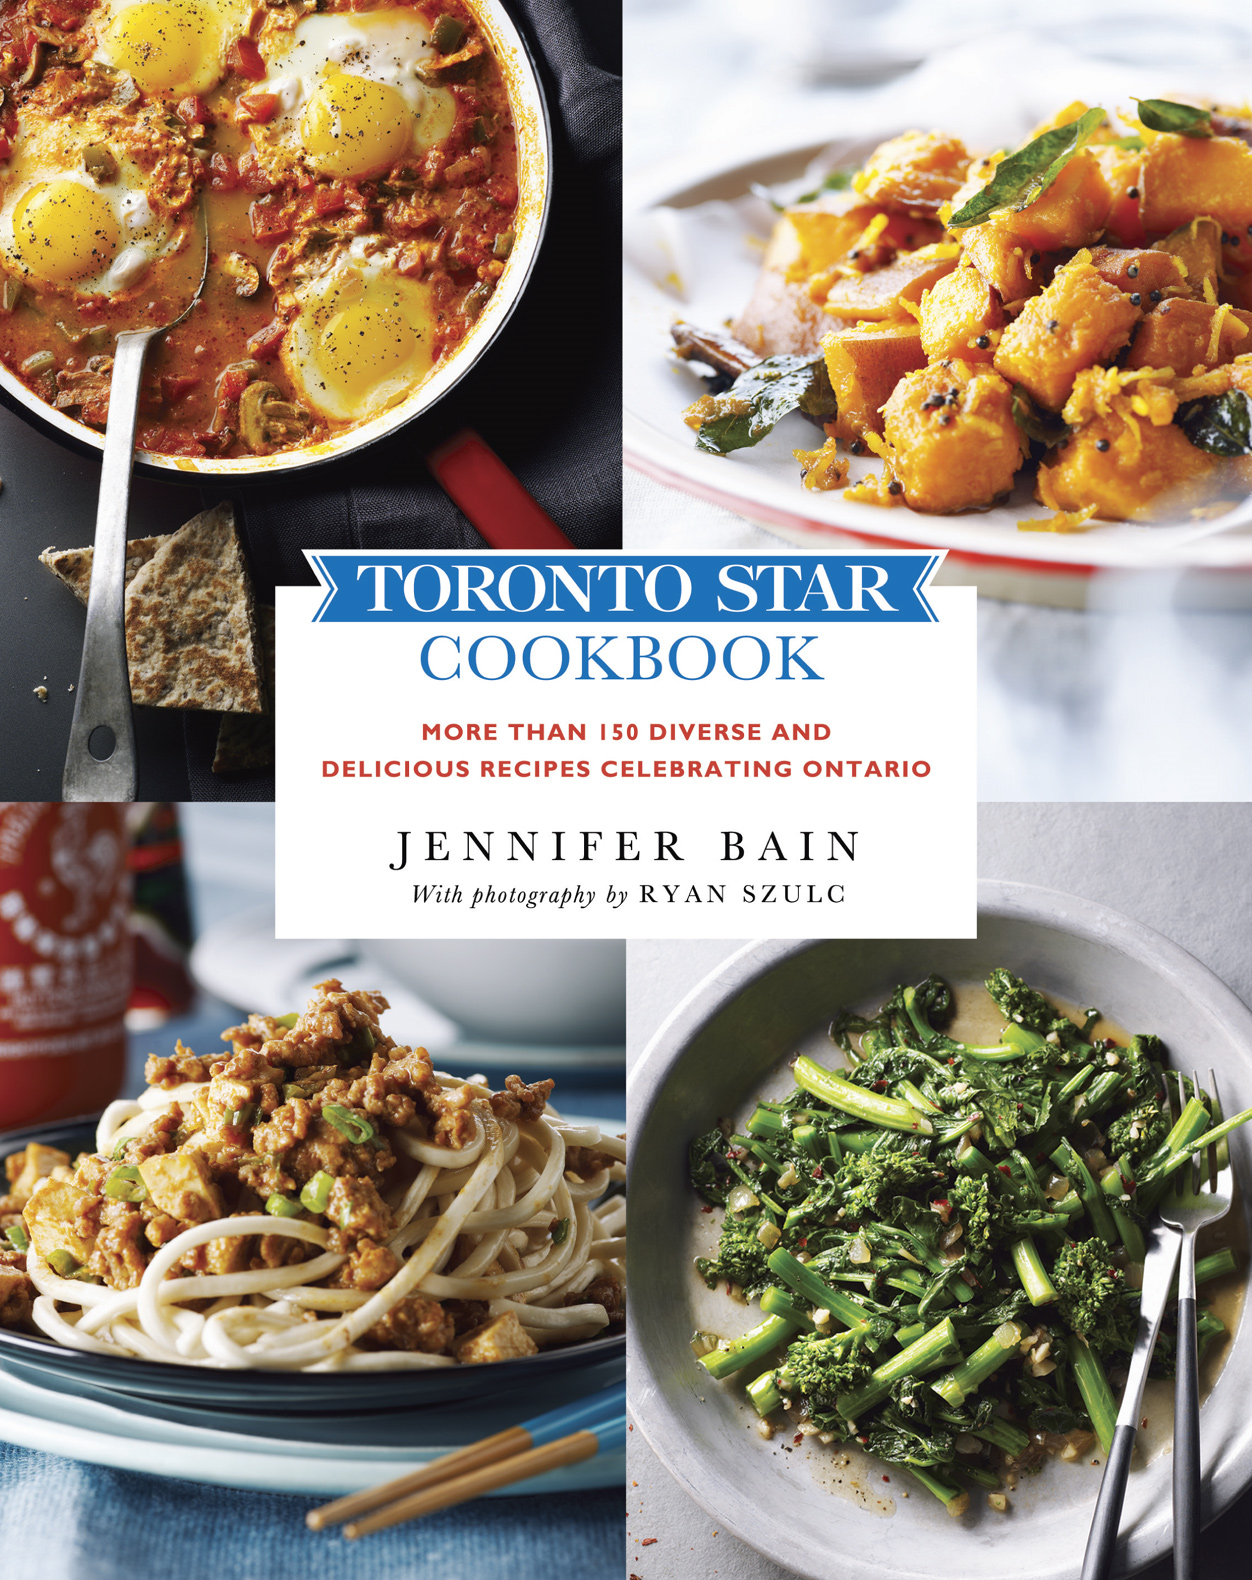 Toronto Star Cookbook By: Jennifer Bain